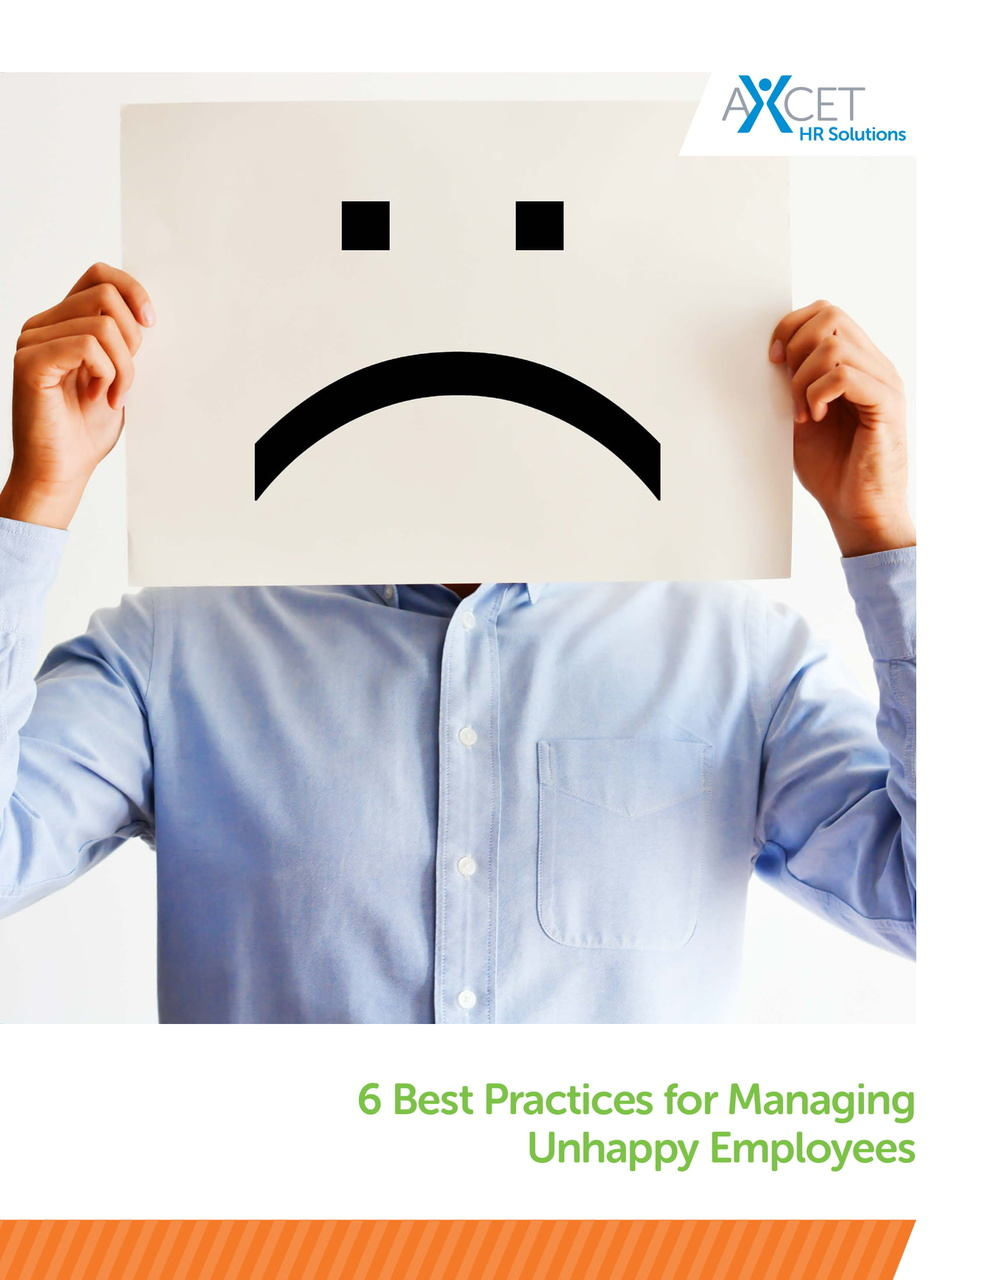 6 Best Practices for Managing Unhappy Employees